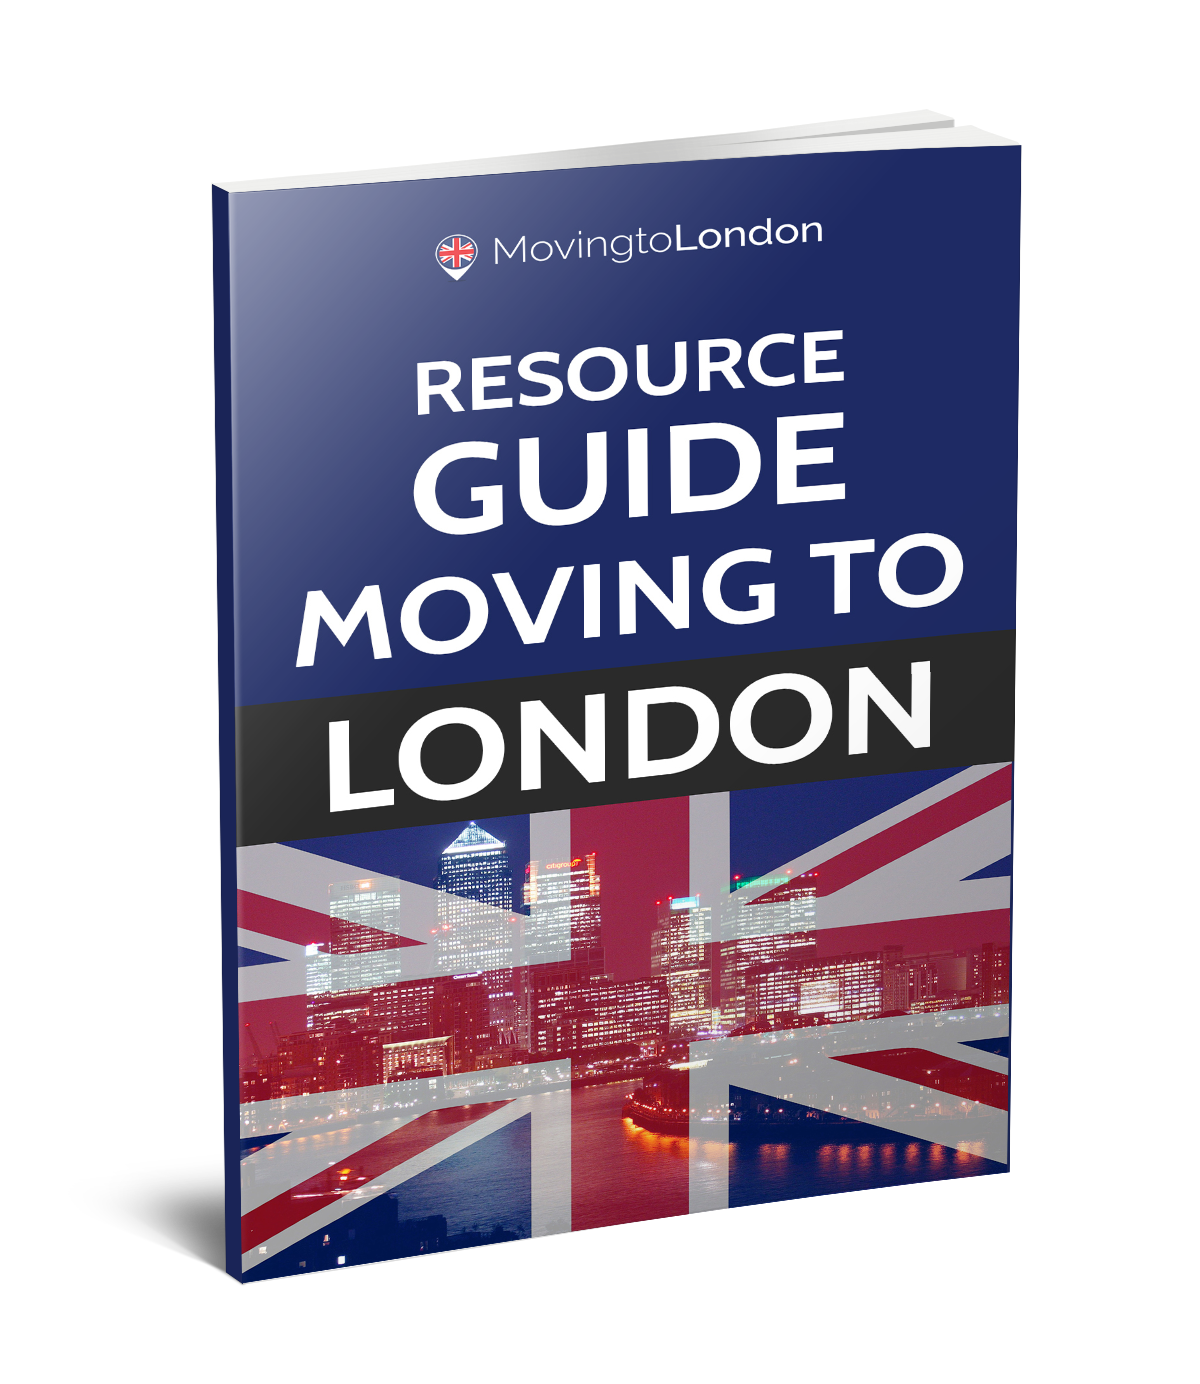 How to become a permanent resident in london london expats guide free guide the 35 tools resources 7000 expats have used to help organize their dream move to london quickly and easily solutioingenieria Image collections